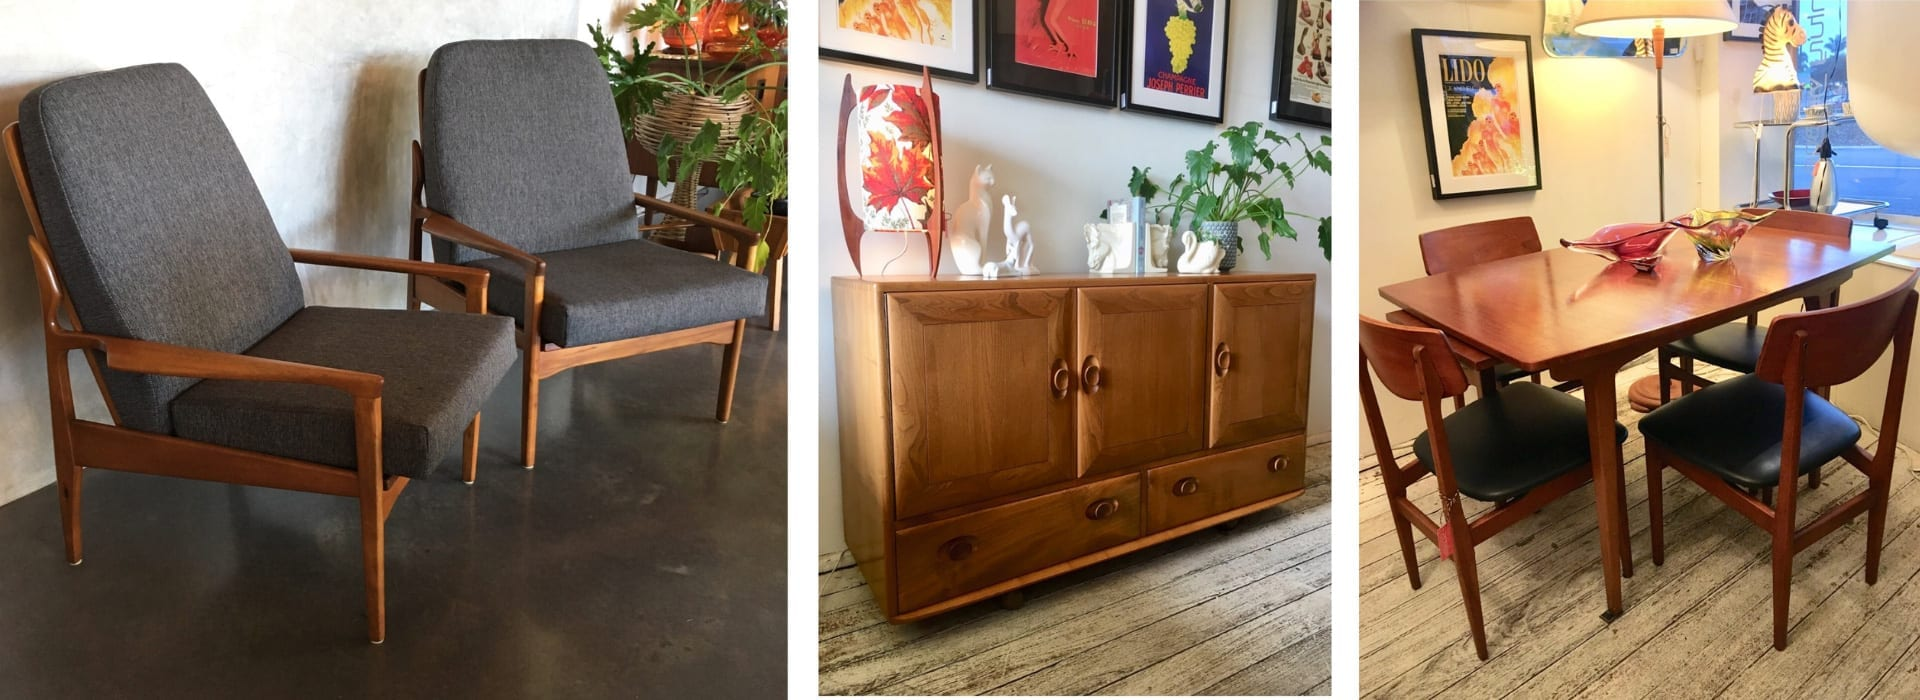 Mid Century Furniture Perth | 20th Century Vintage